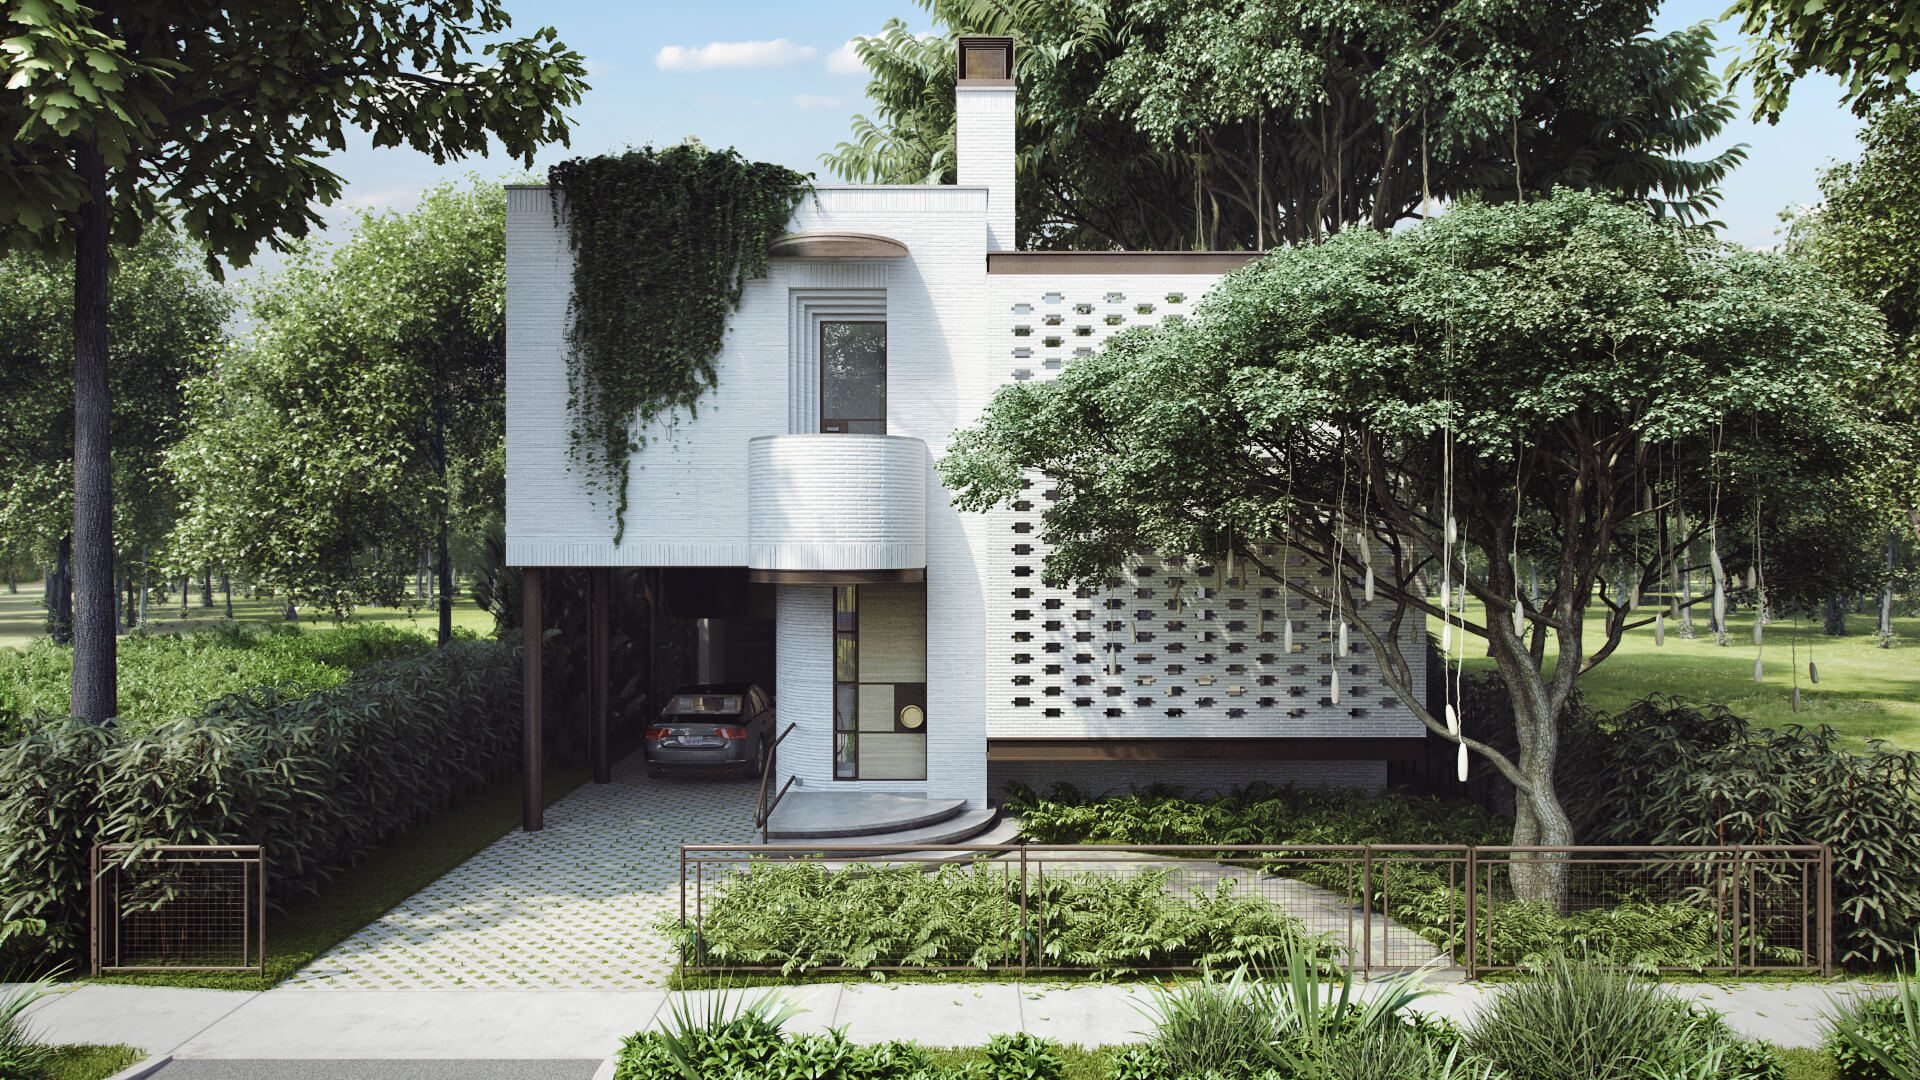 3D Exterior Rendering of a Suburban House